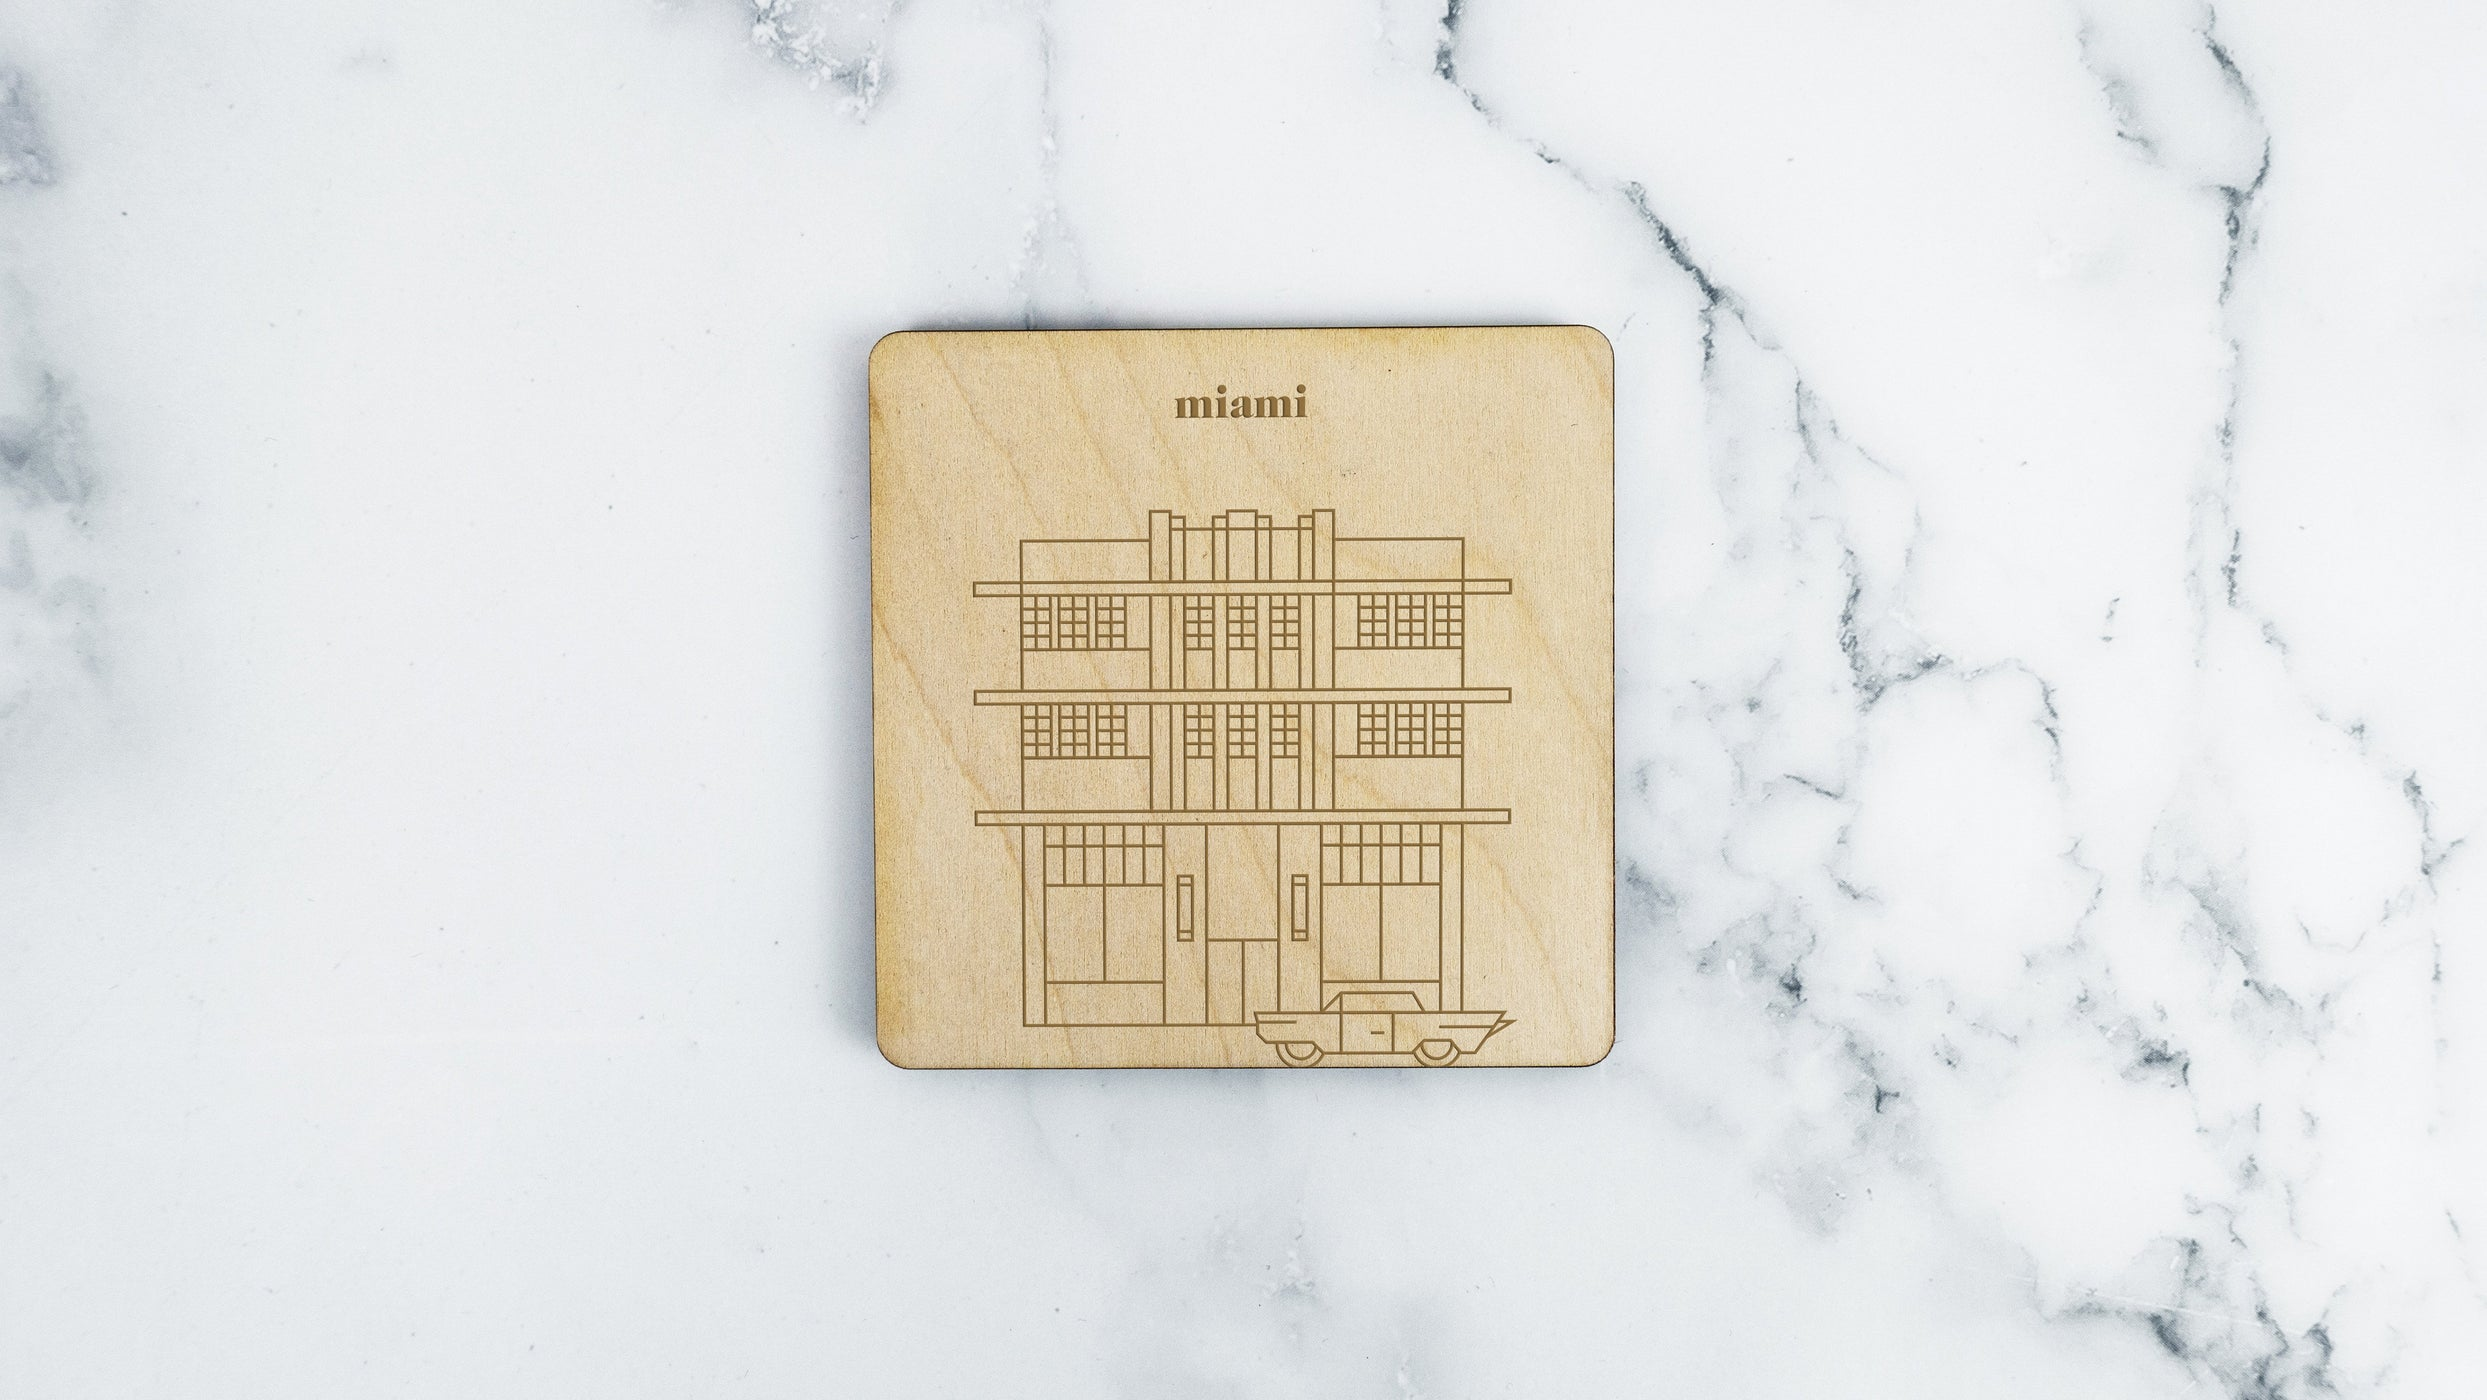 Miami, Marlin Hotel Coaster